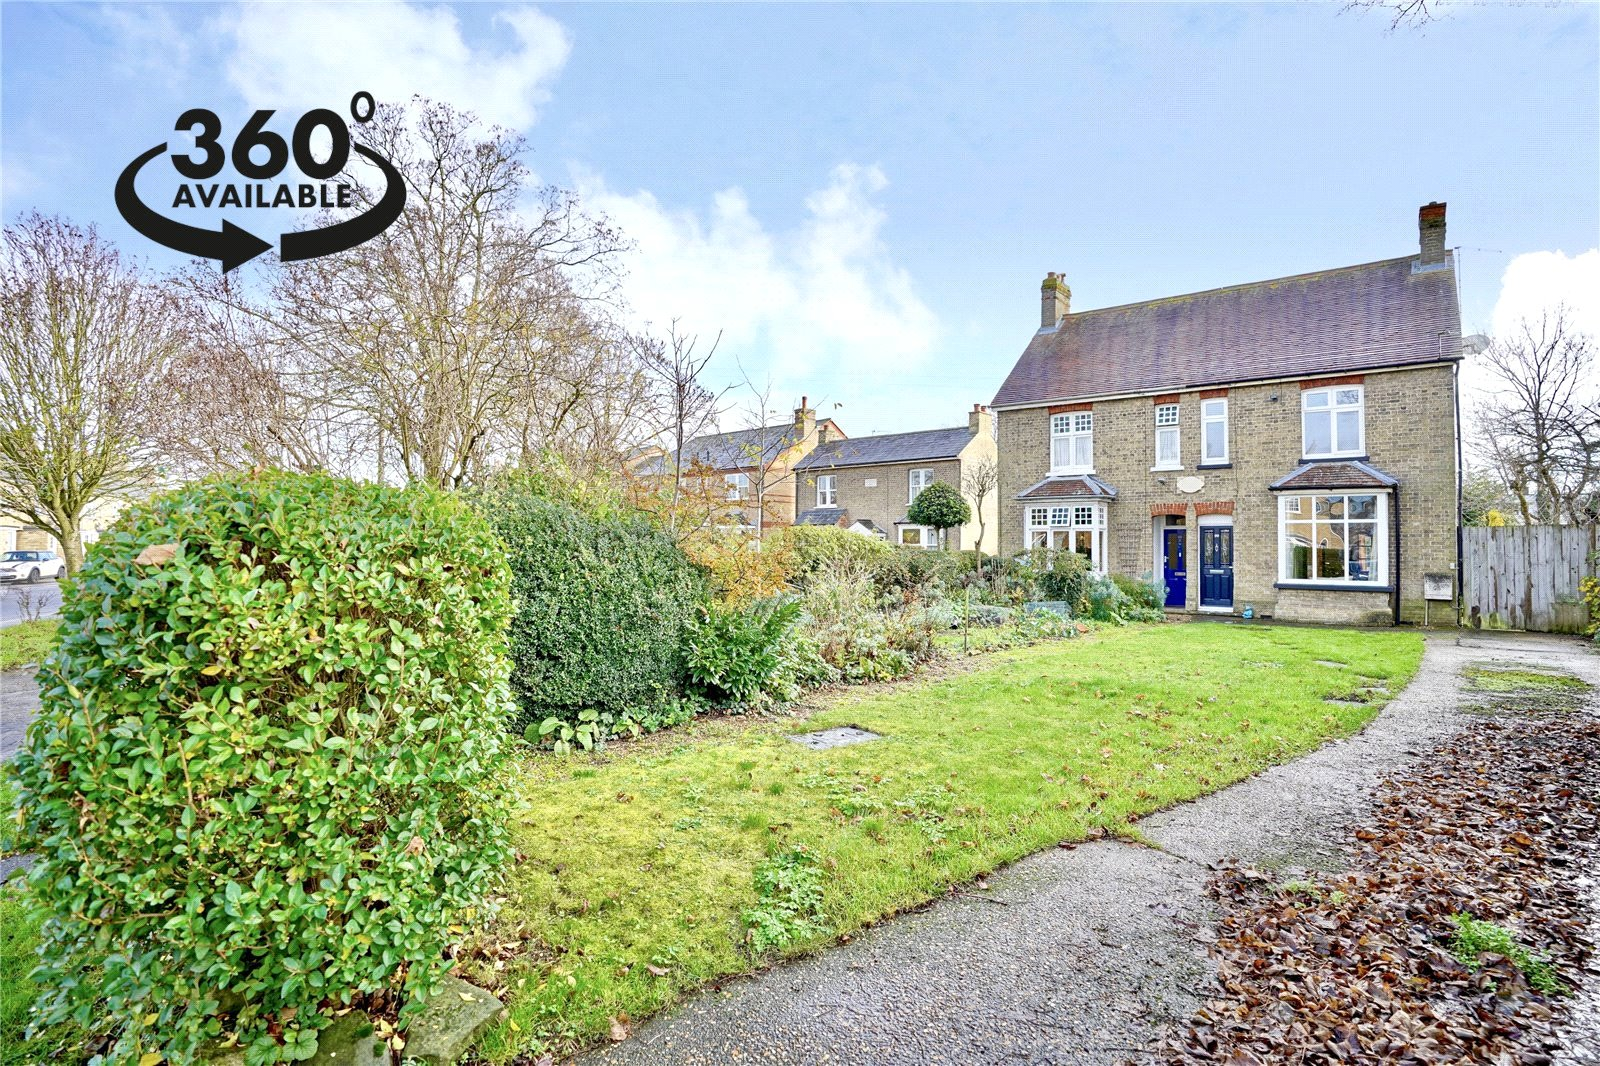 3 bed house for sale in Eaton Ford, St Neots Road, PE19 7BA, PE19